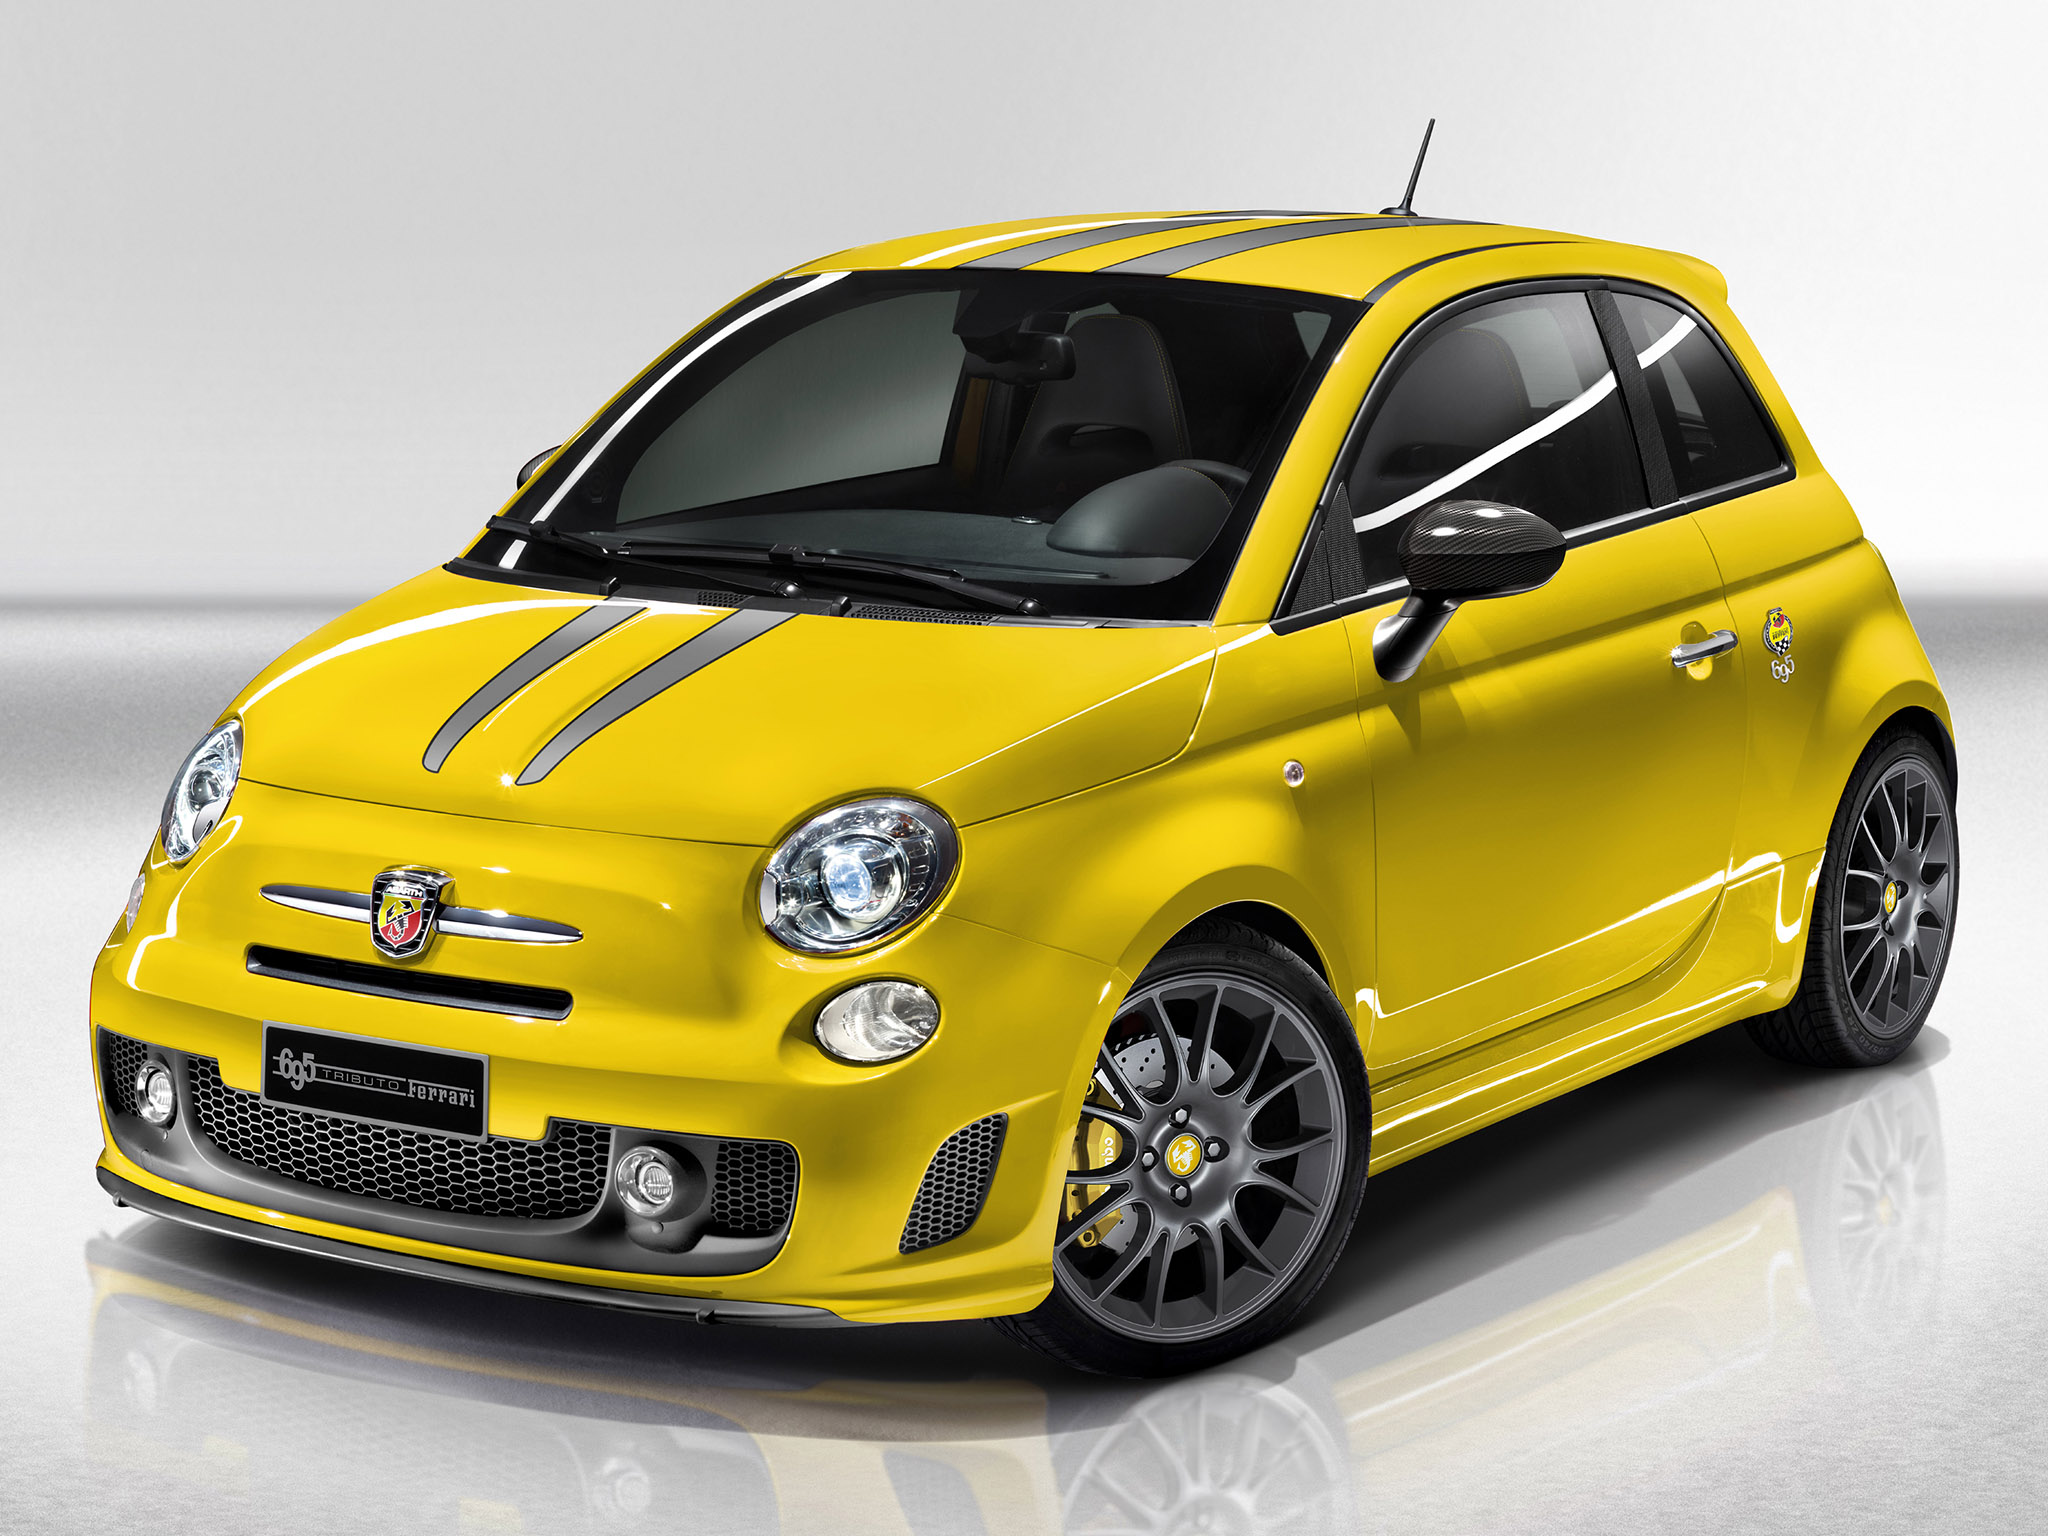 fiat 500 abarth 695 tributo ferrari 2011 fiat 500 abarth. Black Bedroom Furniture Sets. Home Design Ideas